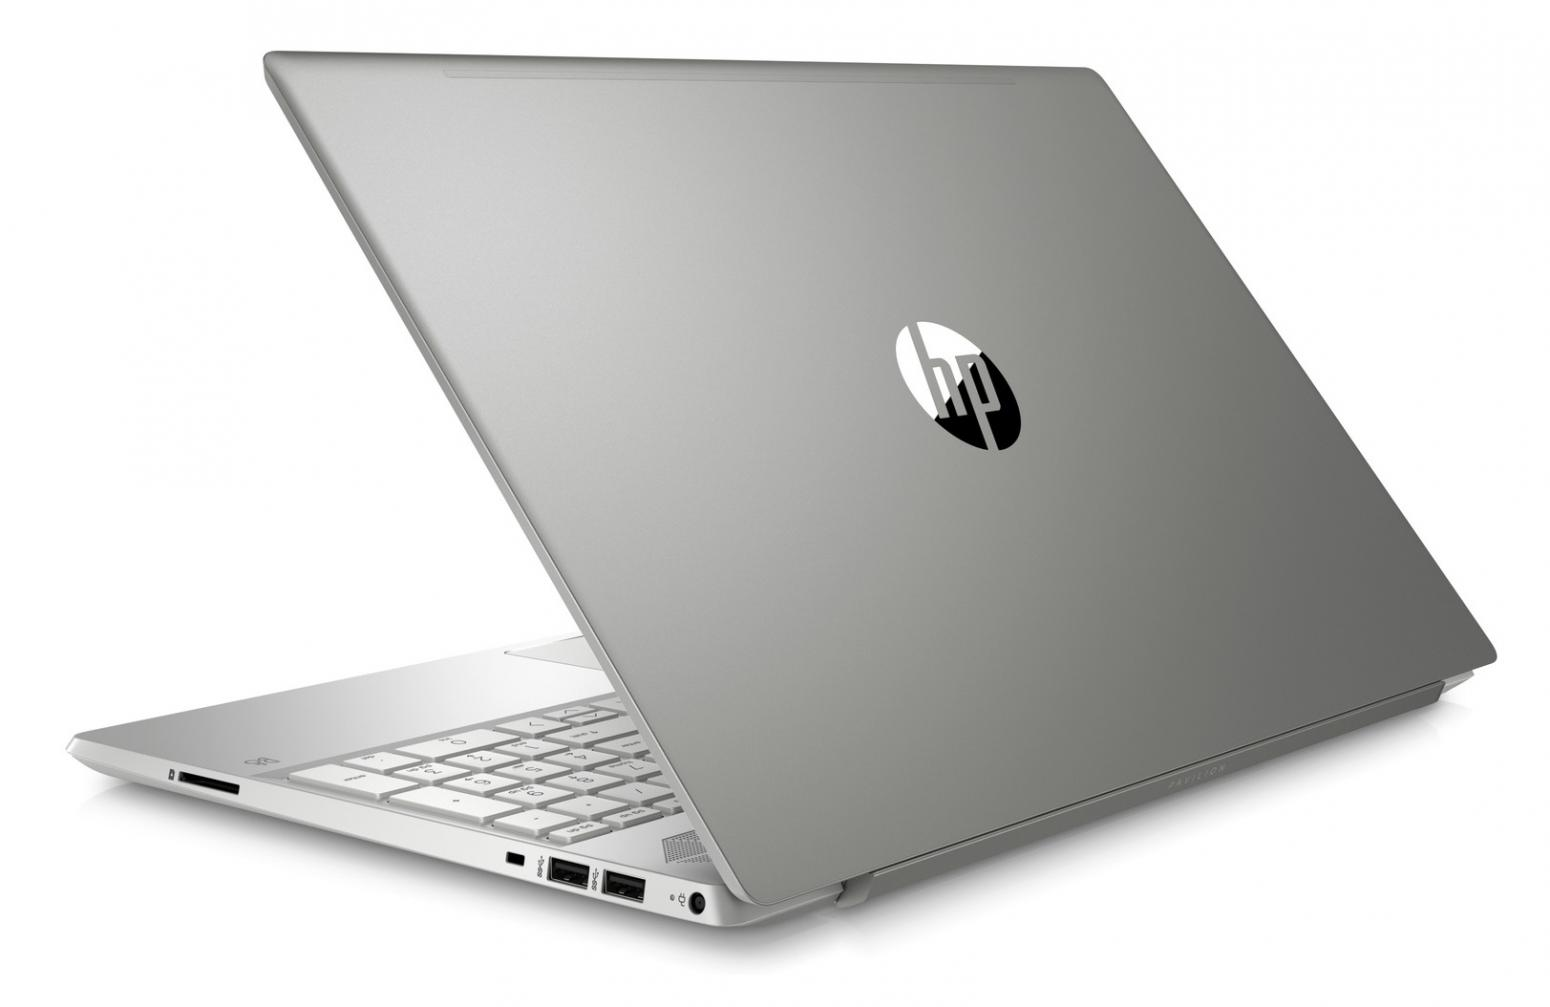 Ordinateur portable HP Pavilion 15-cs3020nf Argent - RAM 16 Go, Wi-Fi ax - photo 4